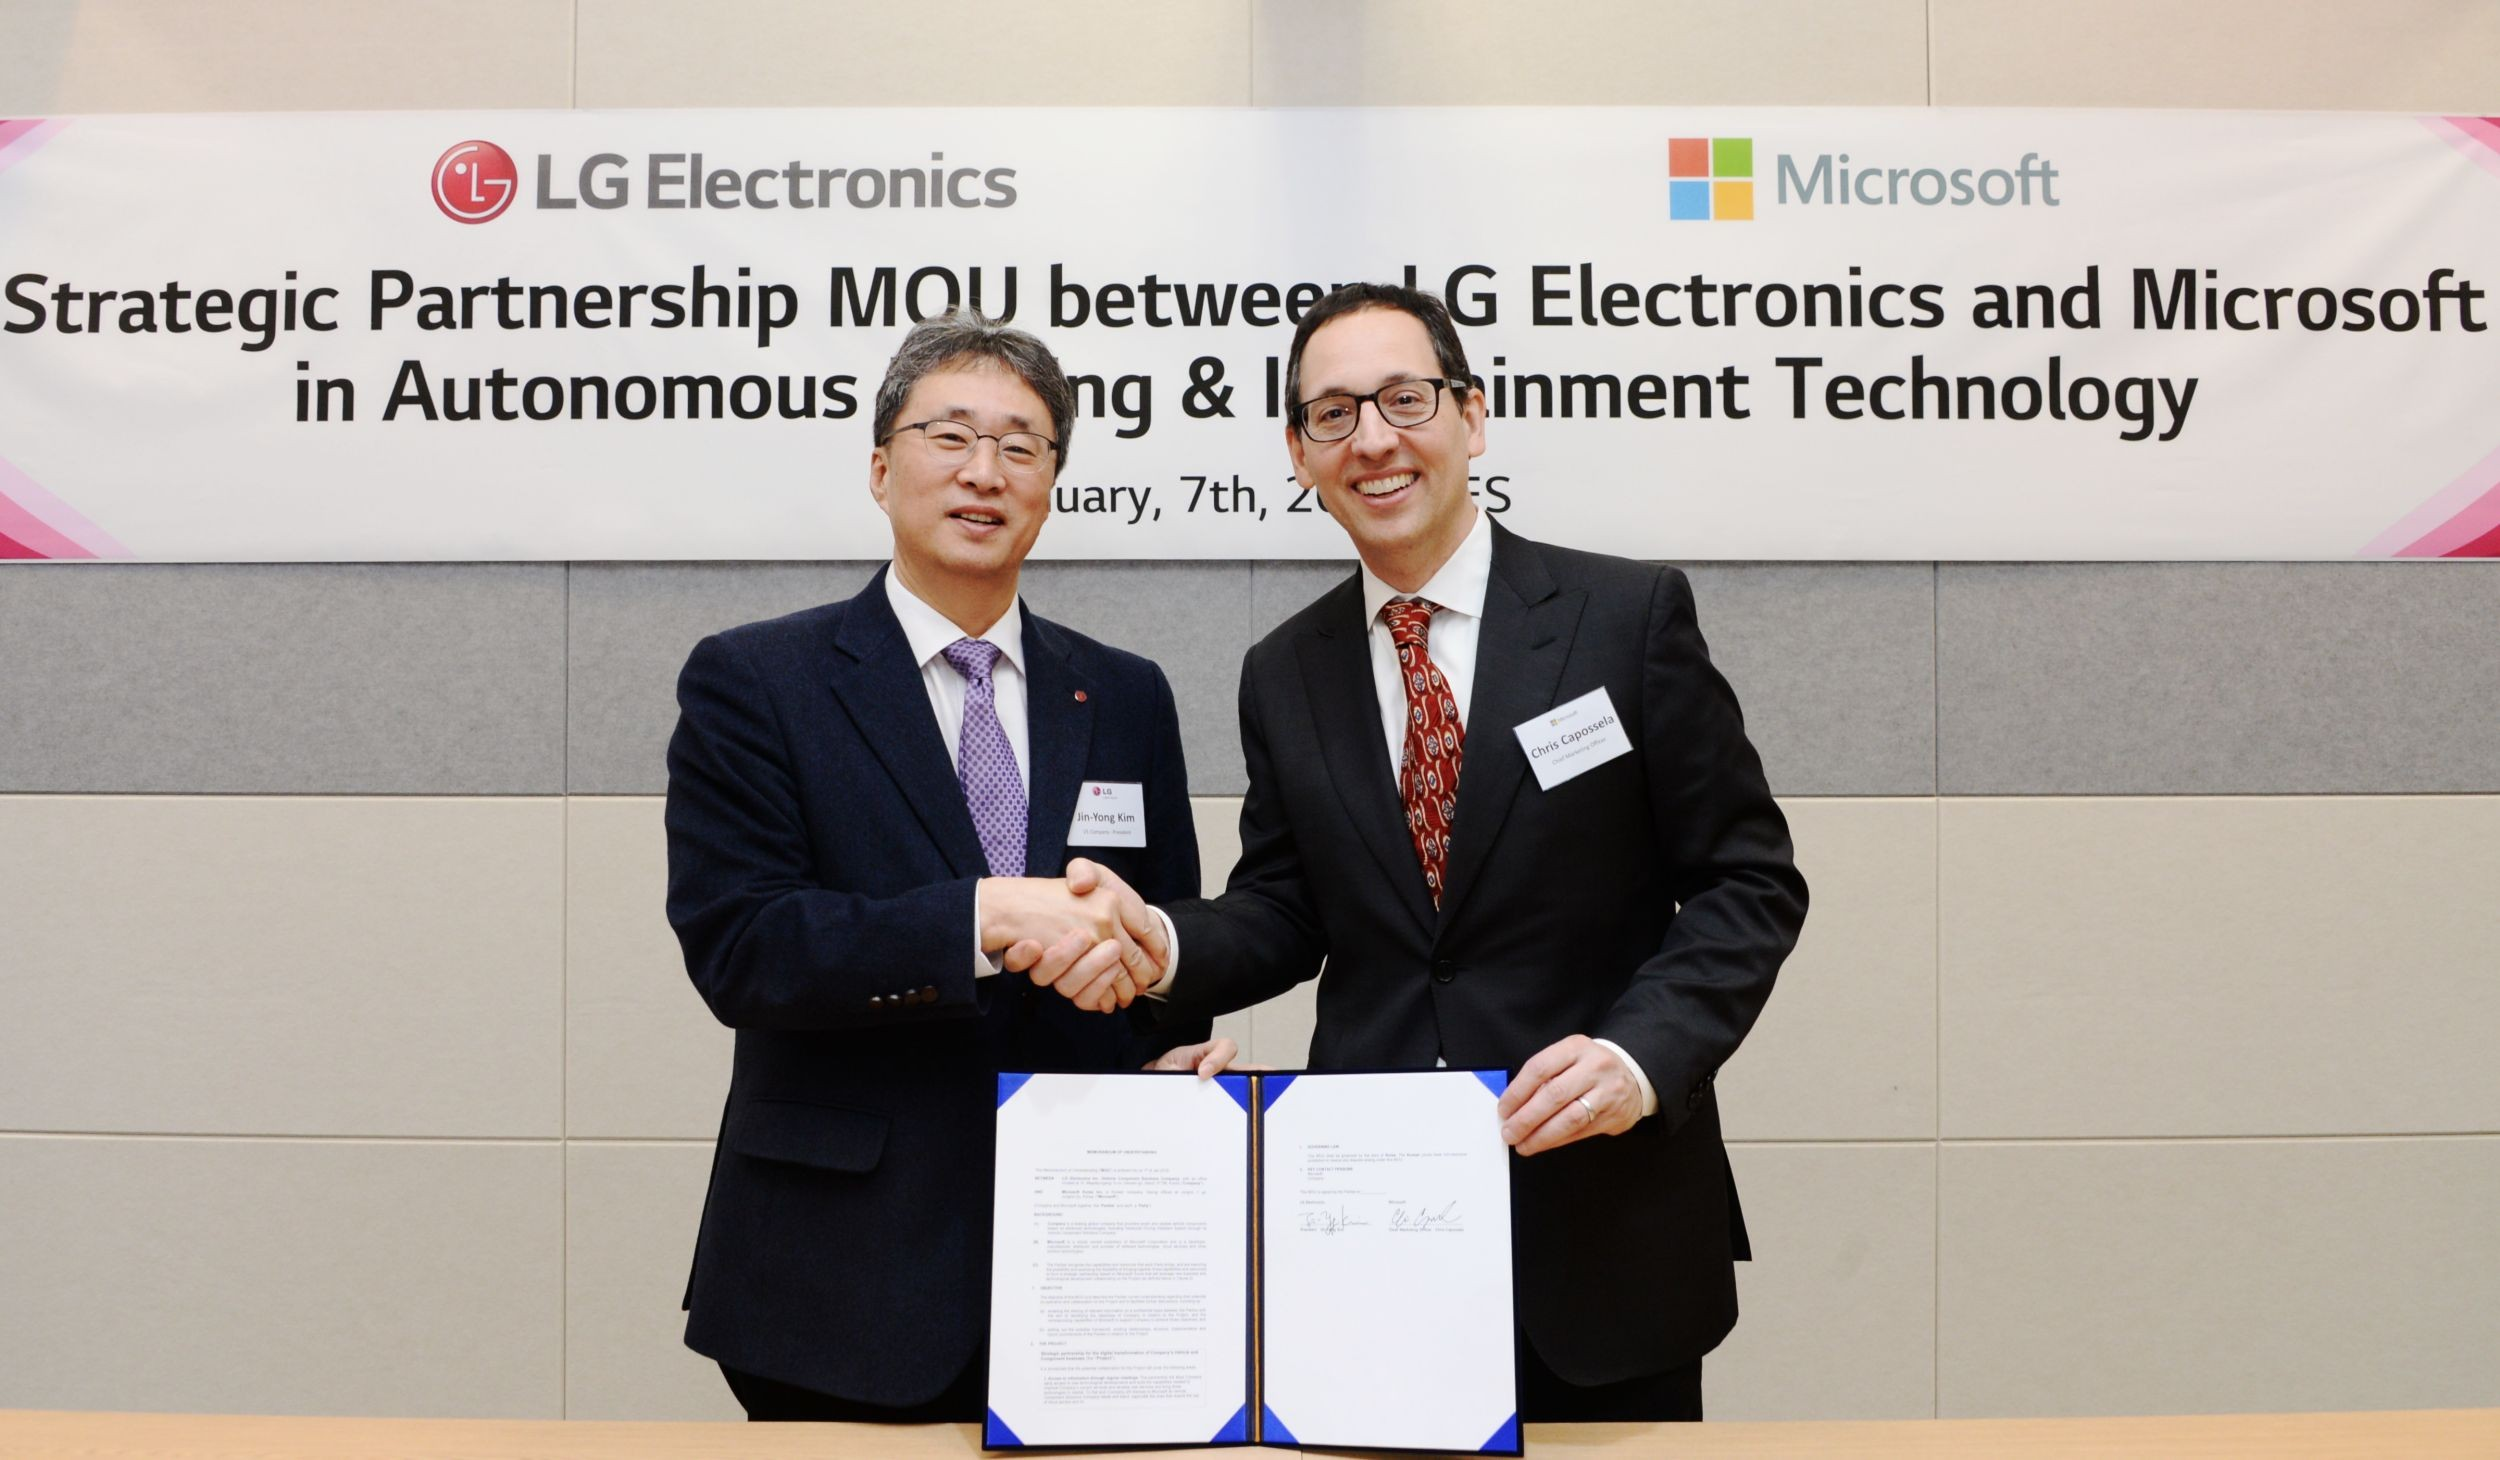 Mr. Kim Jin-yong, president of LG's Vehicle Component Solutions Company, shake hands with Mr. Sanjay Ravi, general manager, automotive industry at Microsoft.